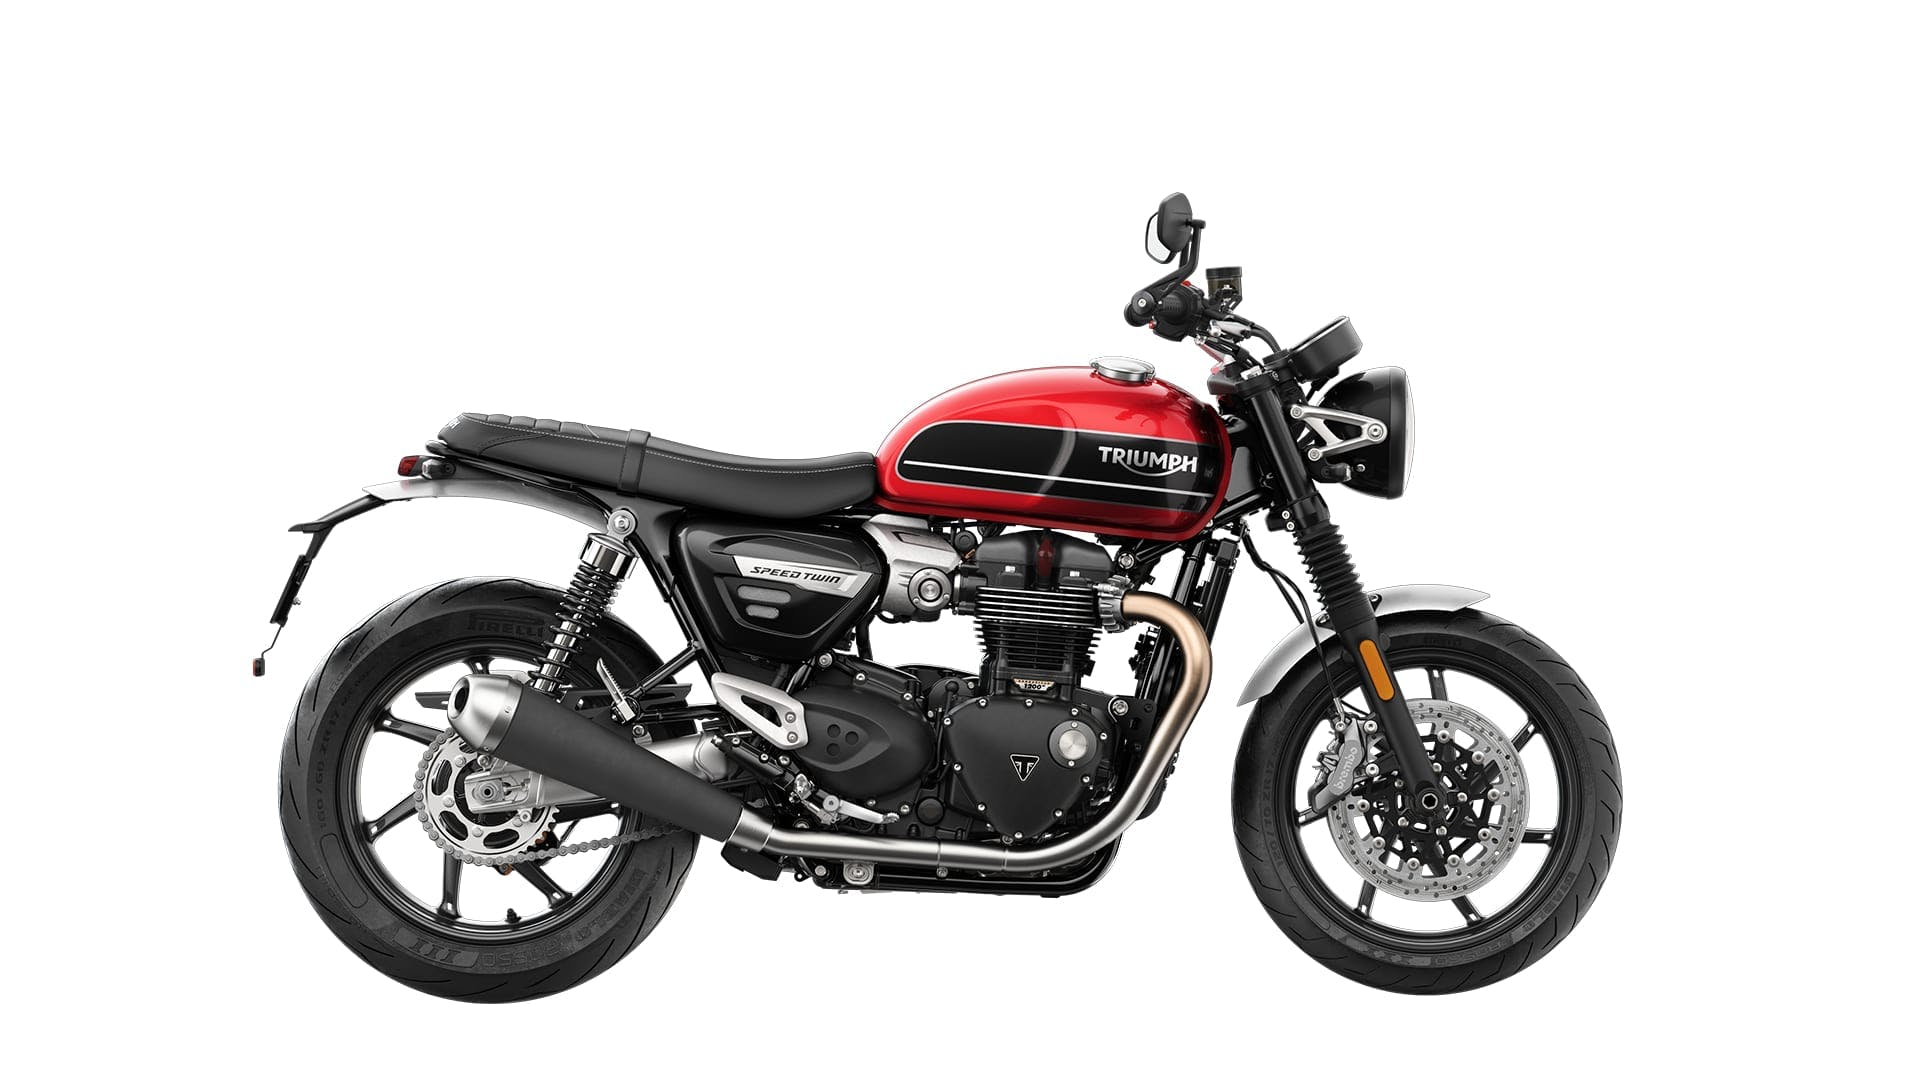 TRIUMPH BONNEVILLE SPEED TWIN in korosi red and storm grey colour